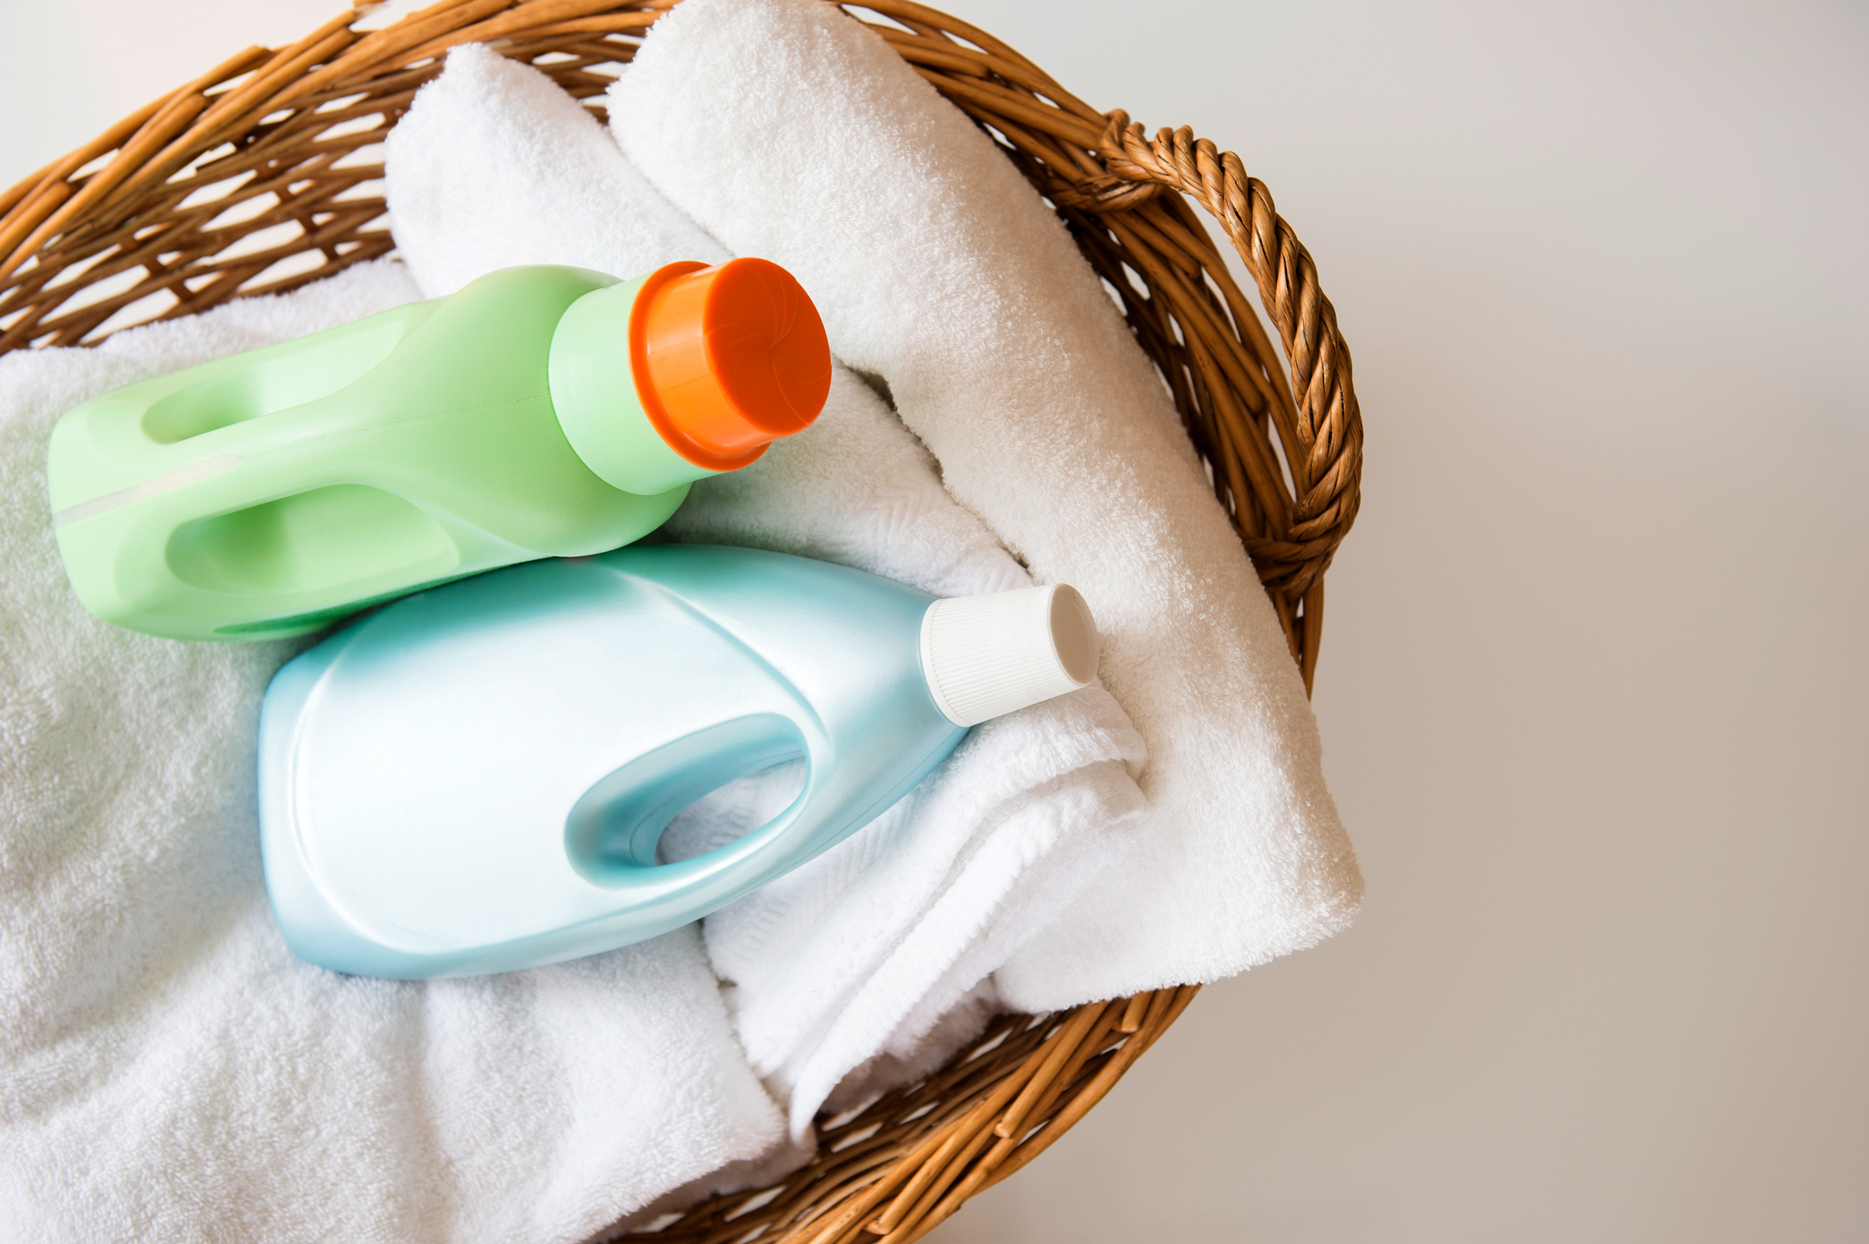 wicker basket filled with white towels and laundry detergent bottles